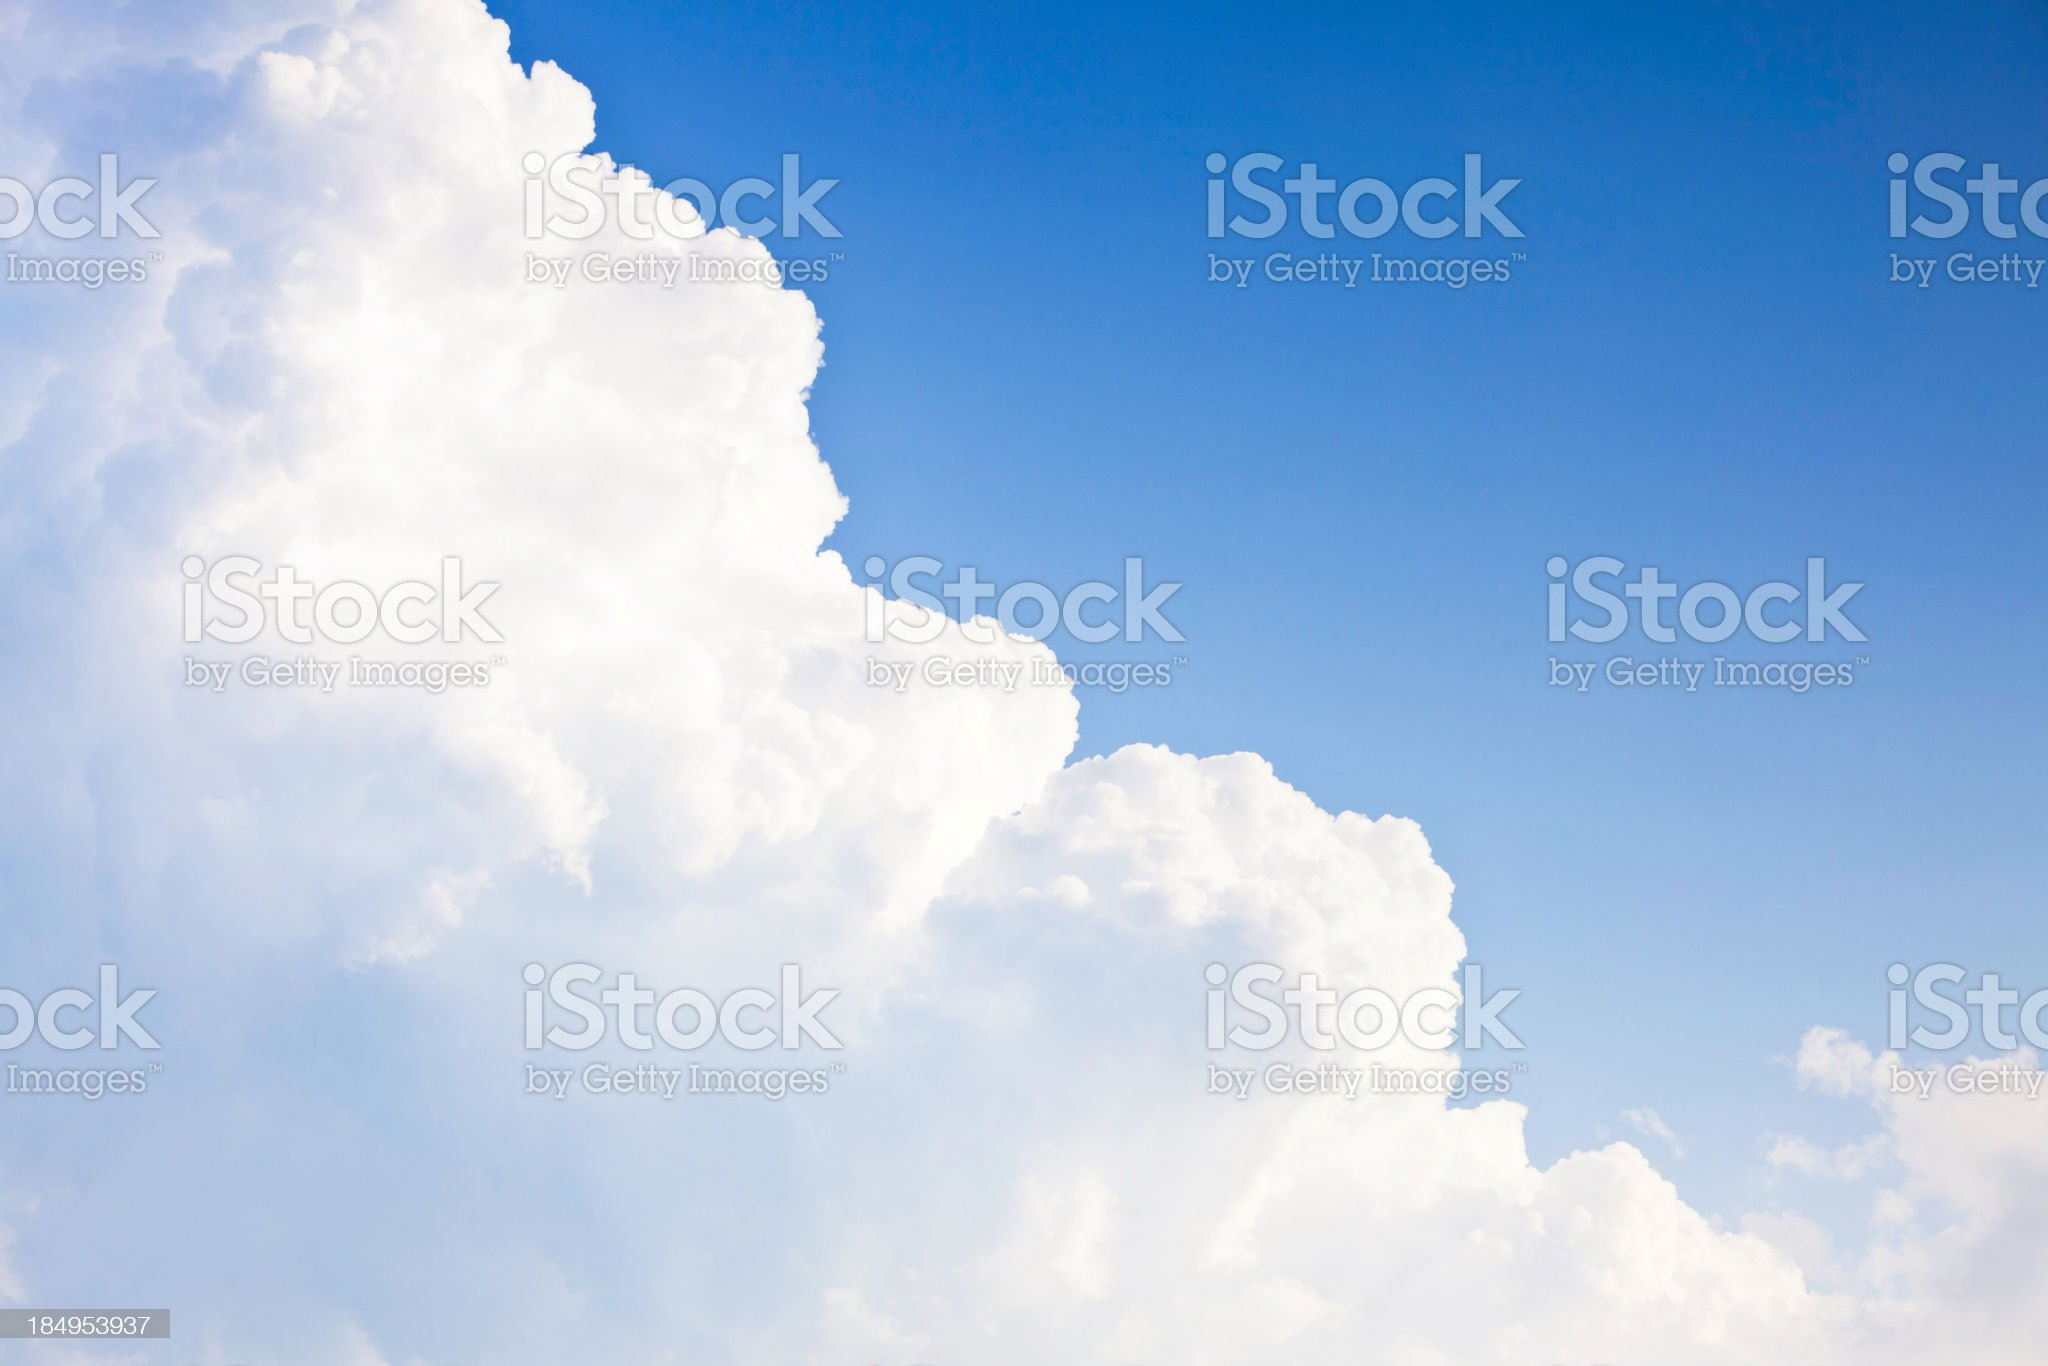 Perfect Clouds with Copy Space royalty-free stock photo